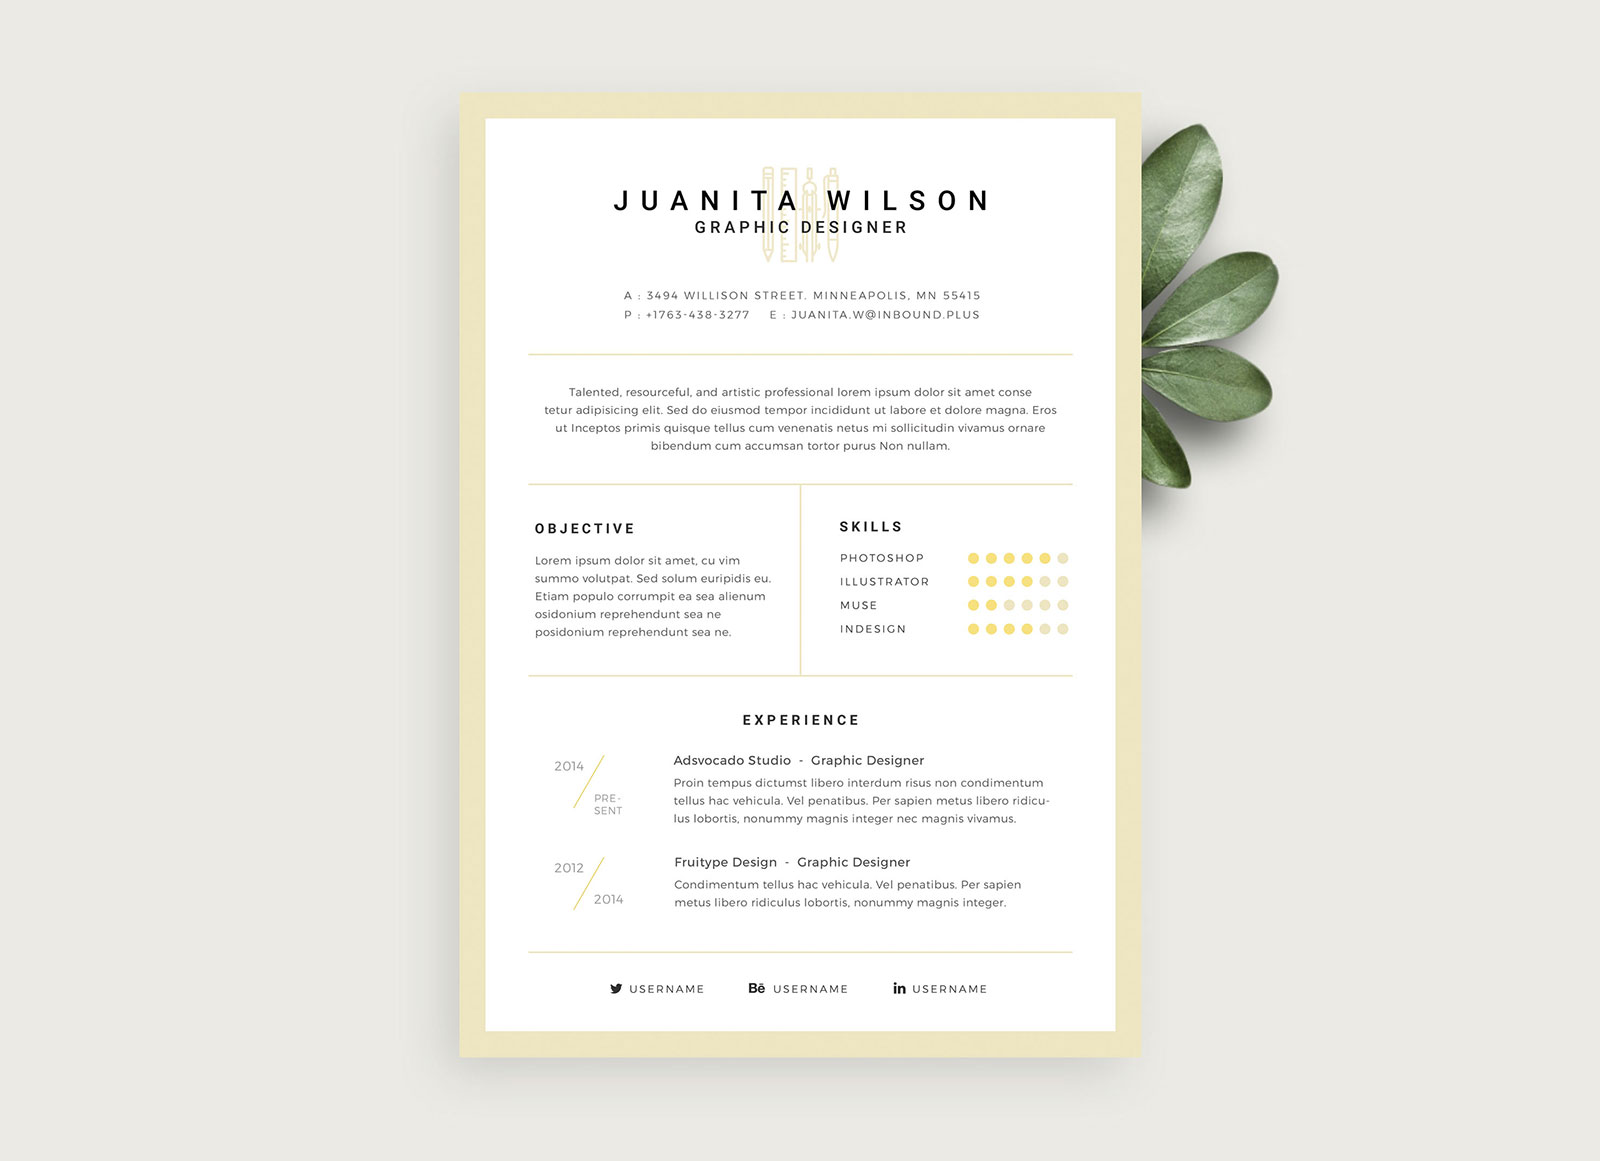 Free-Clean-Resume-Template-PSD-for-Graphic-Designer-4 (1)